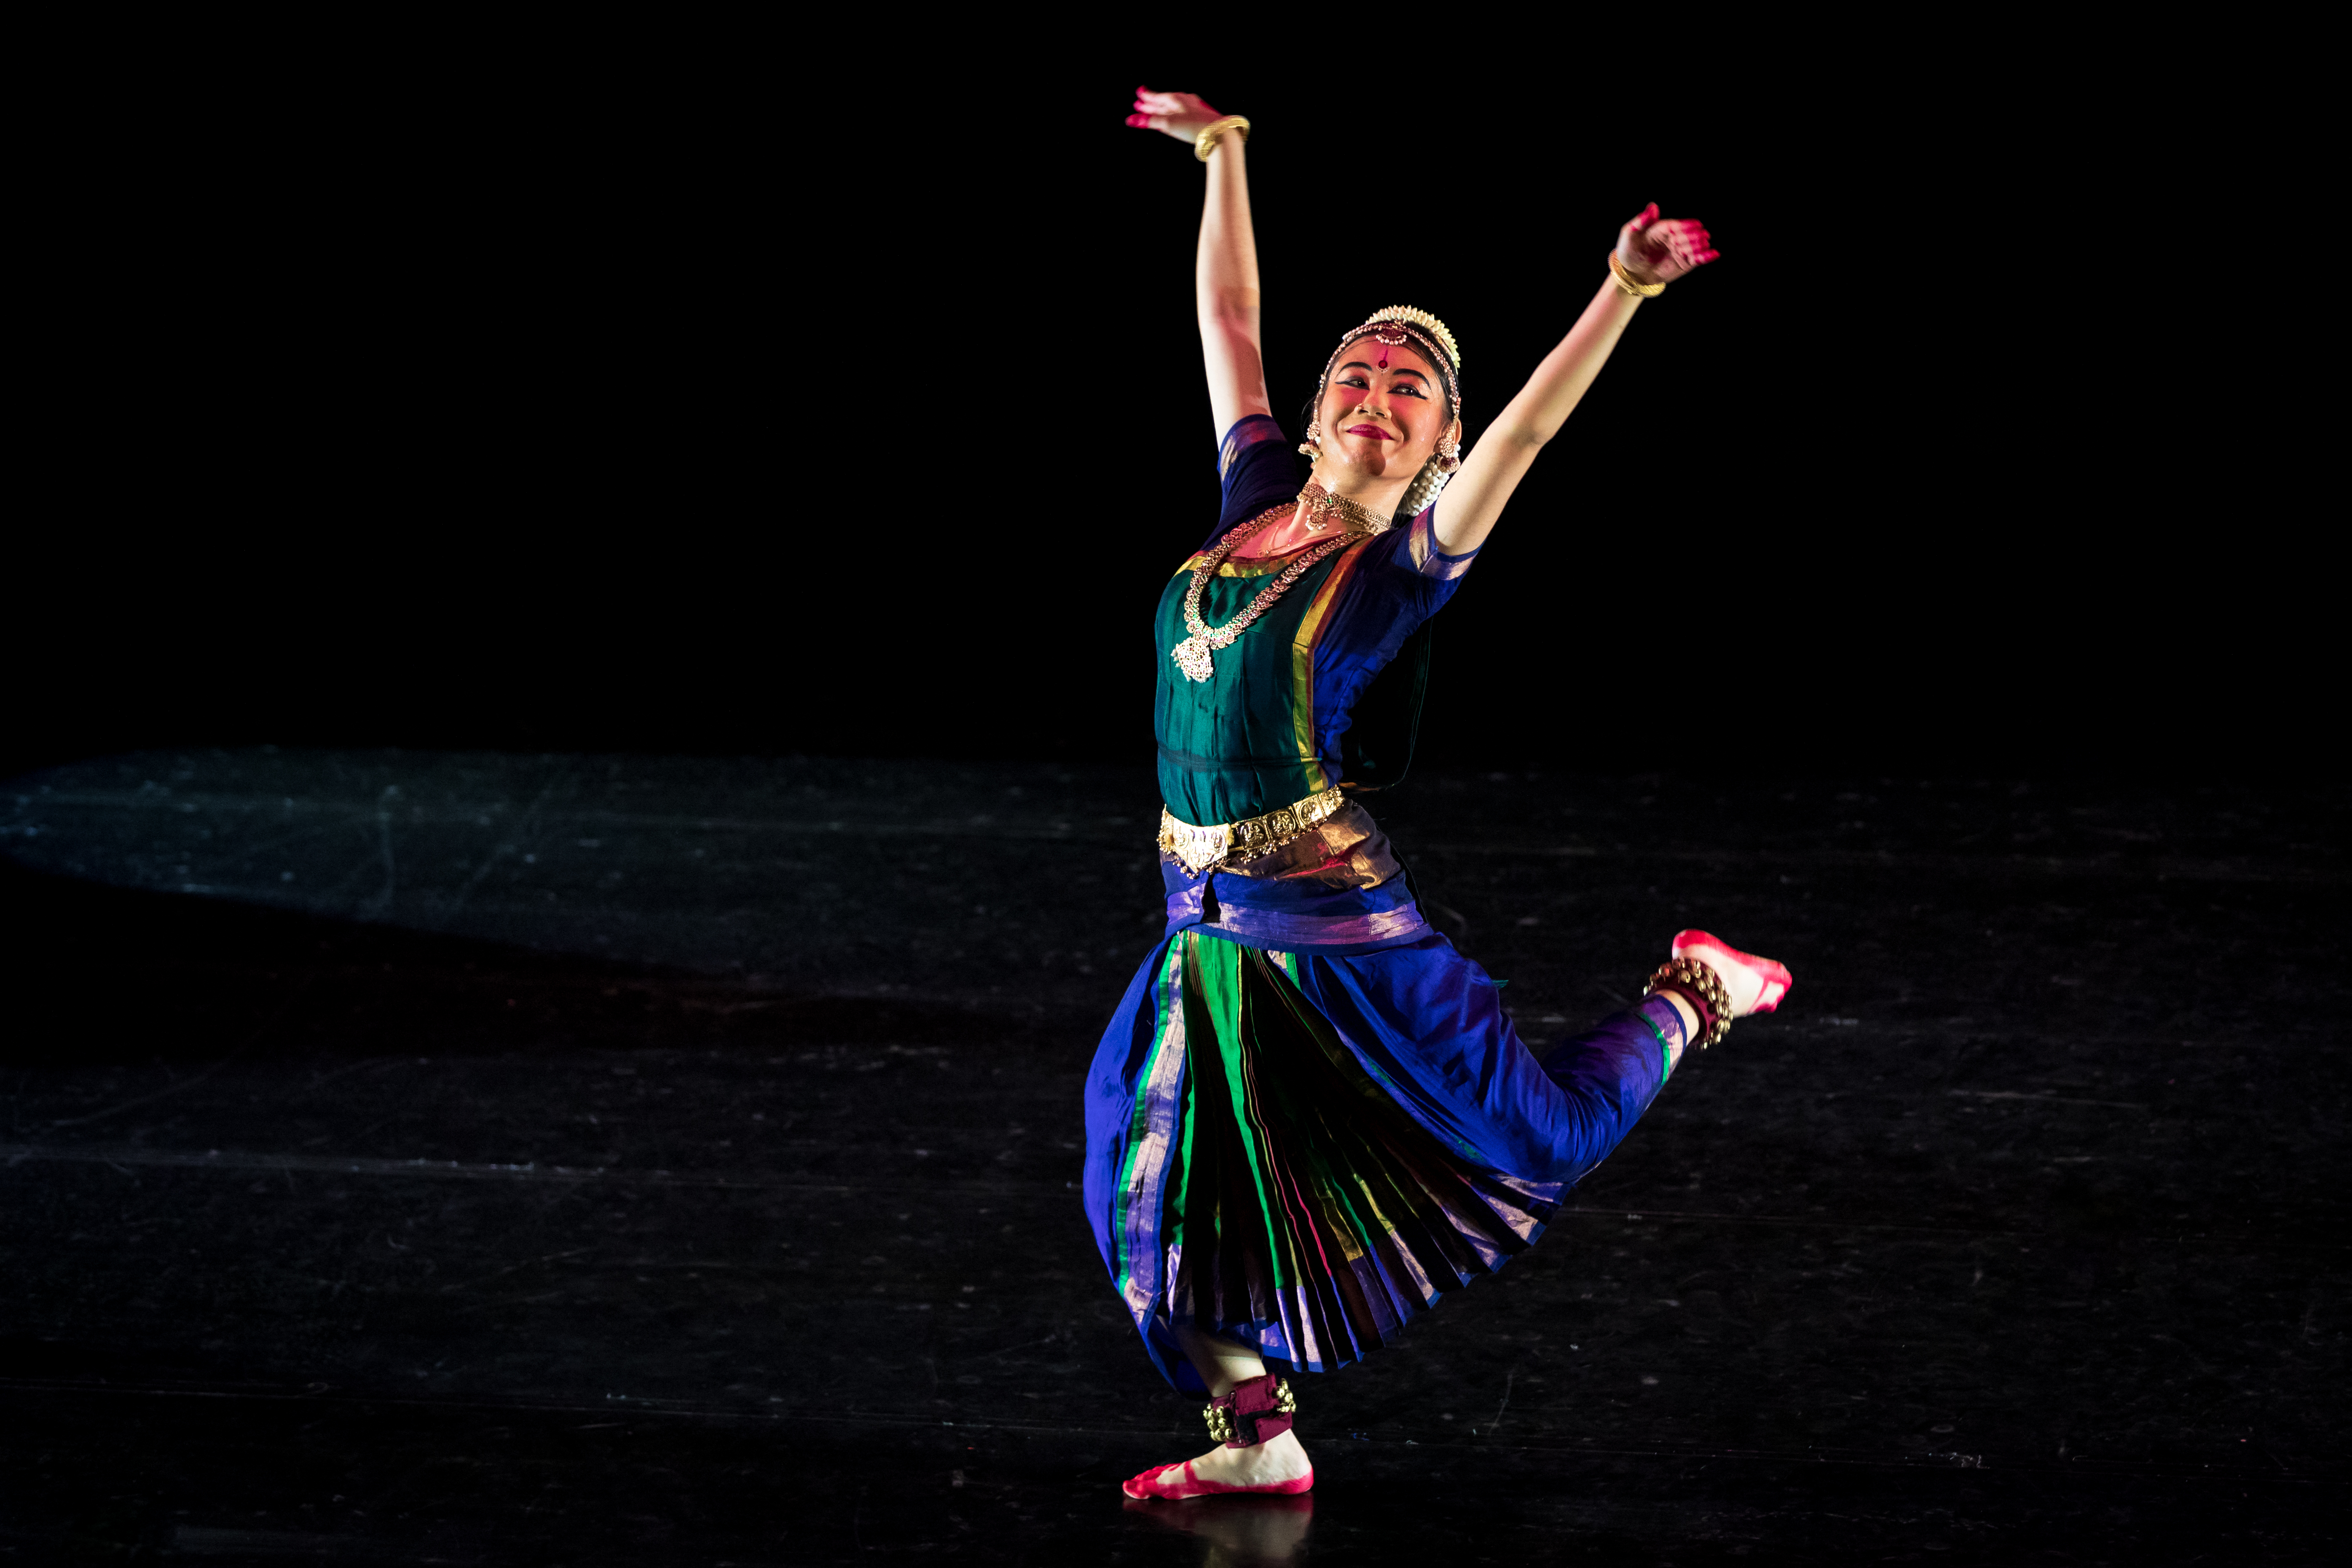 Of the 6 items Mei Fei performed at the Goodman Arts Centre Black Box, the Shabdam, Thillai Ambalam was her second piece. Photo Courtesy: Apsaras Arts